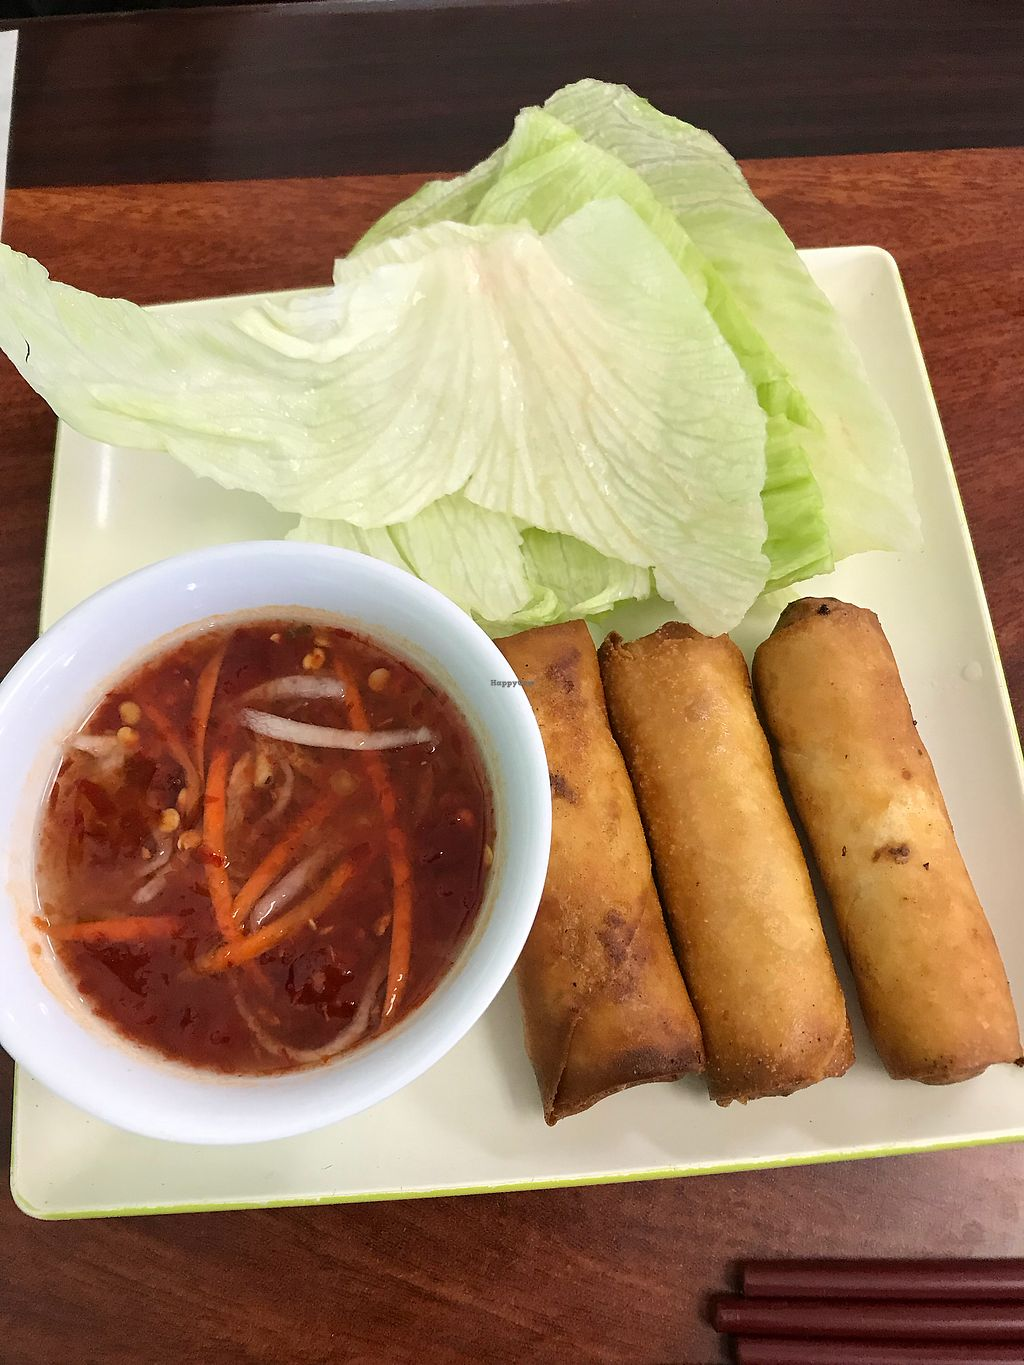 "Photo of Thien Dang Vegetarian  by <a href=""/members/profile/sjberrest"">sjberrest</a> <br/>Egg roll <br/> April 22, 2018  - <a href='/contact/abuse/image/33714/389588'>Report</a>"